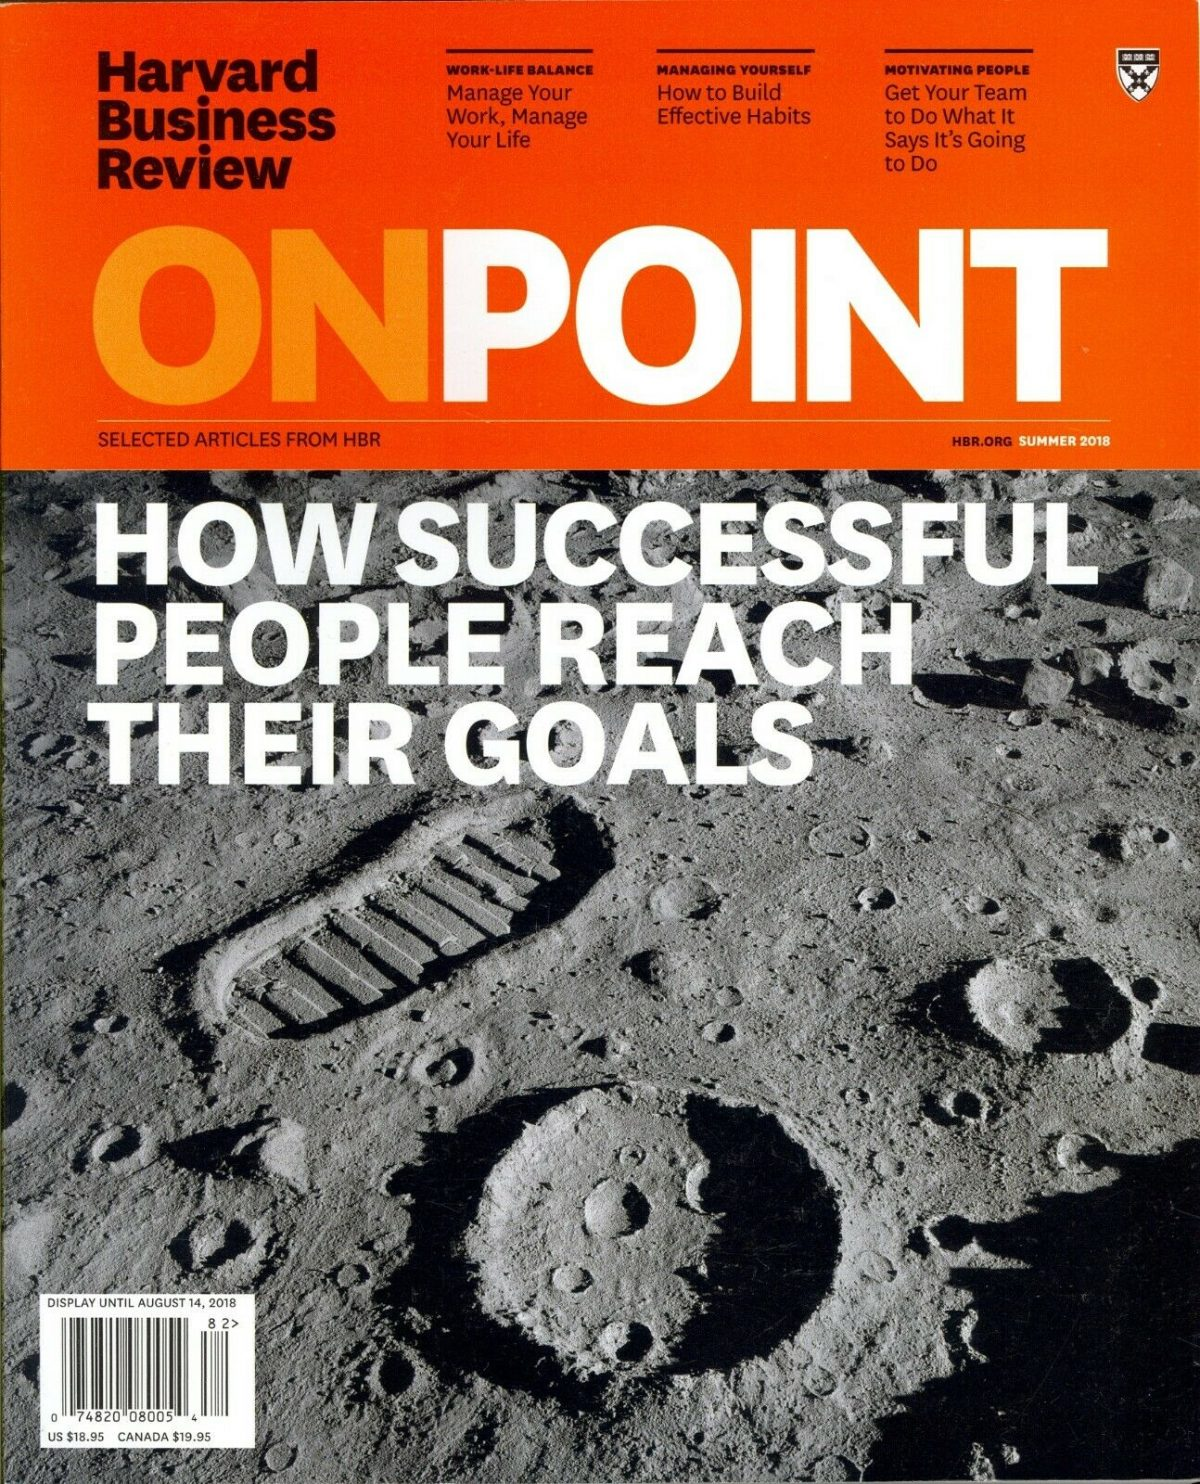 Harvard Business Review OnPoint How Successful People Reach Their Goals 2018